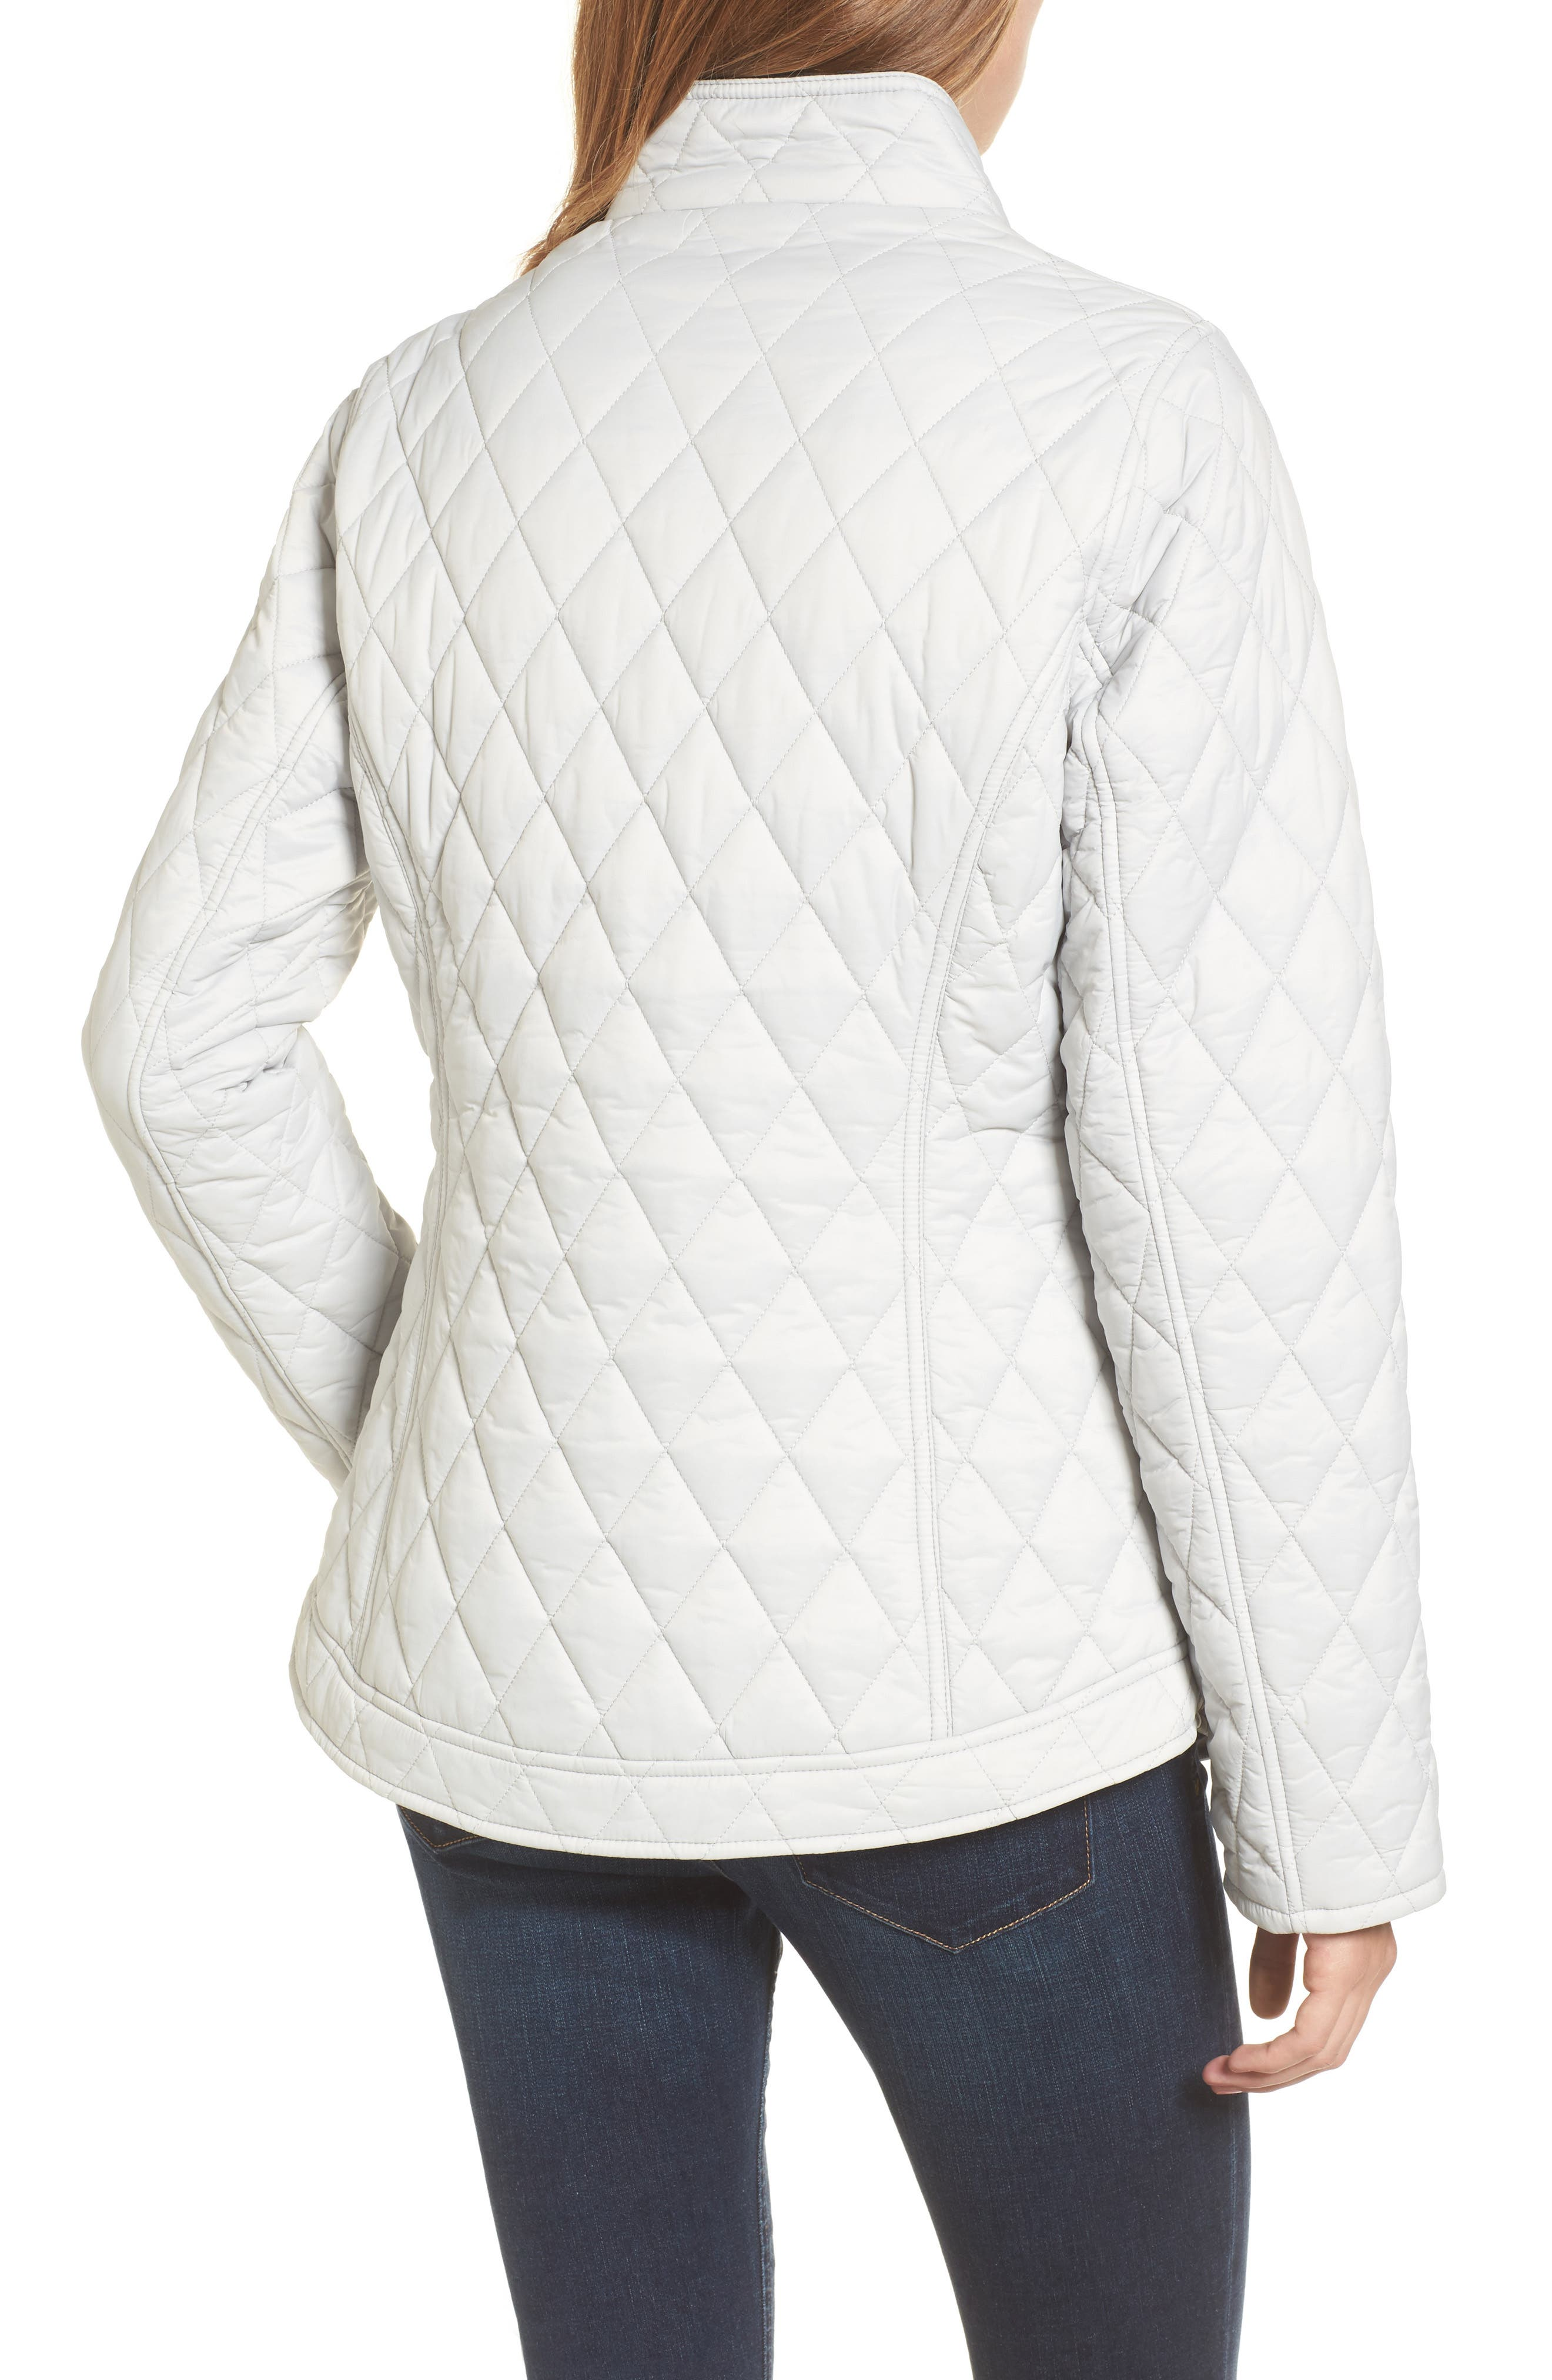 Dolostone Quilted Jacket,                             Alternate thumbnail 2, color,                             150